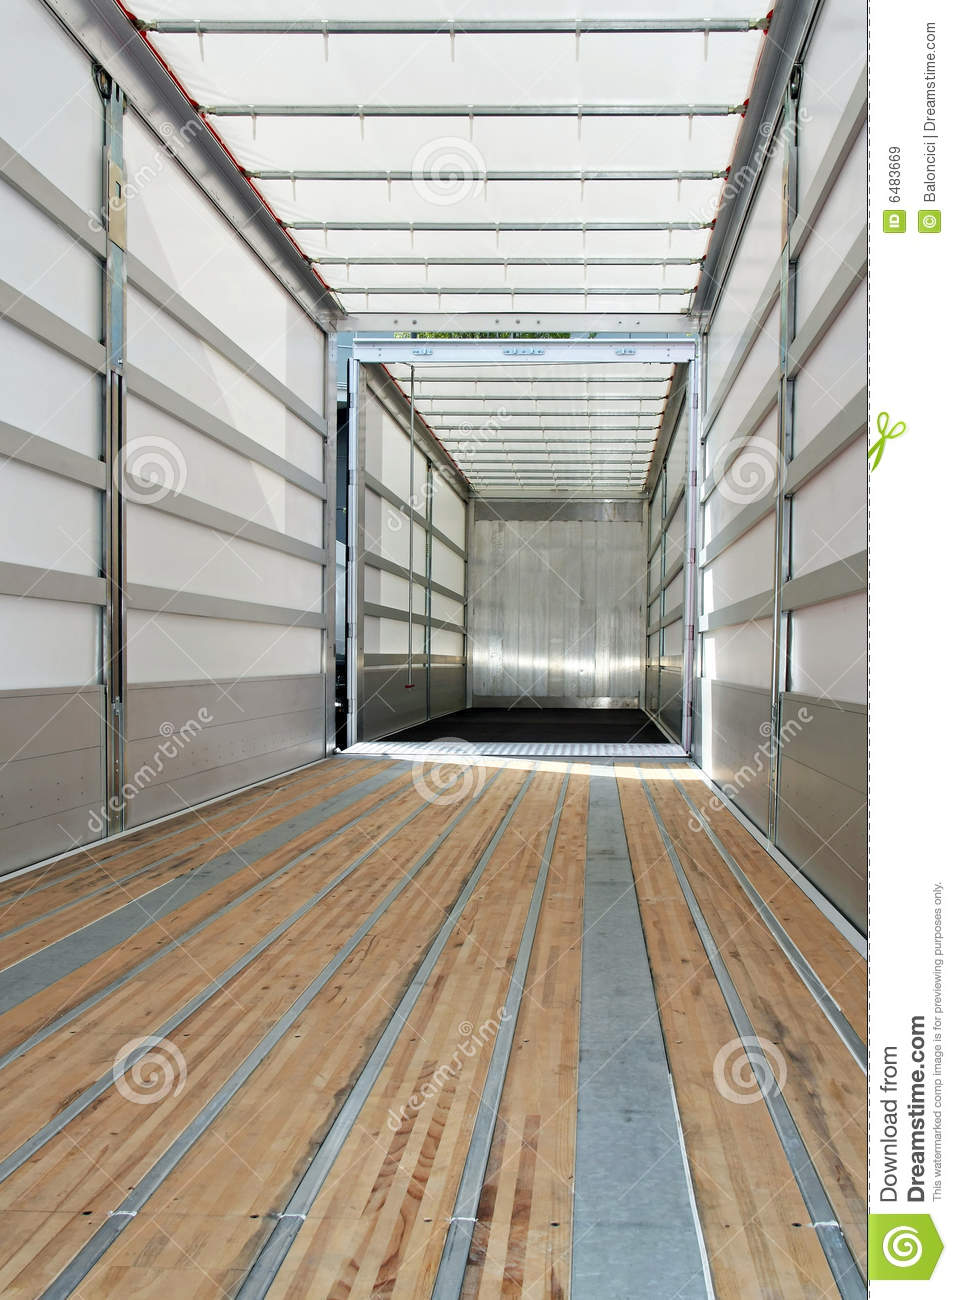 Empty trailer vertical royalty free stock images image for L interieur trailer